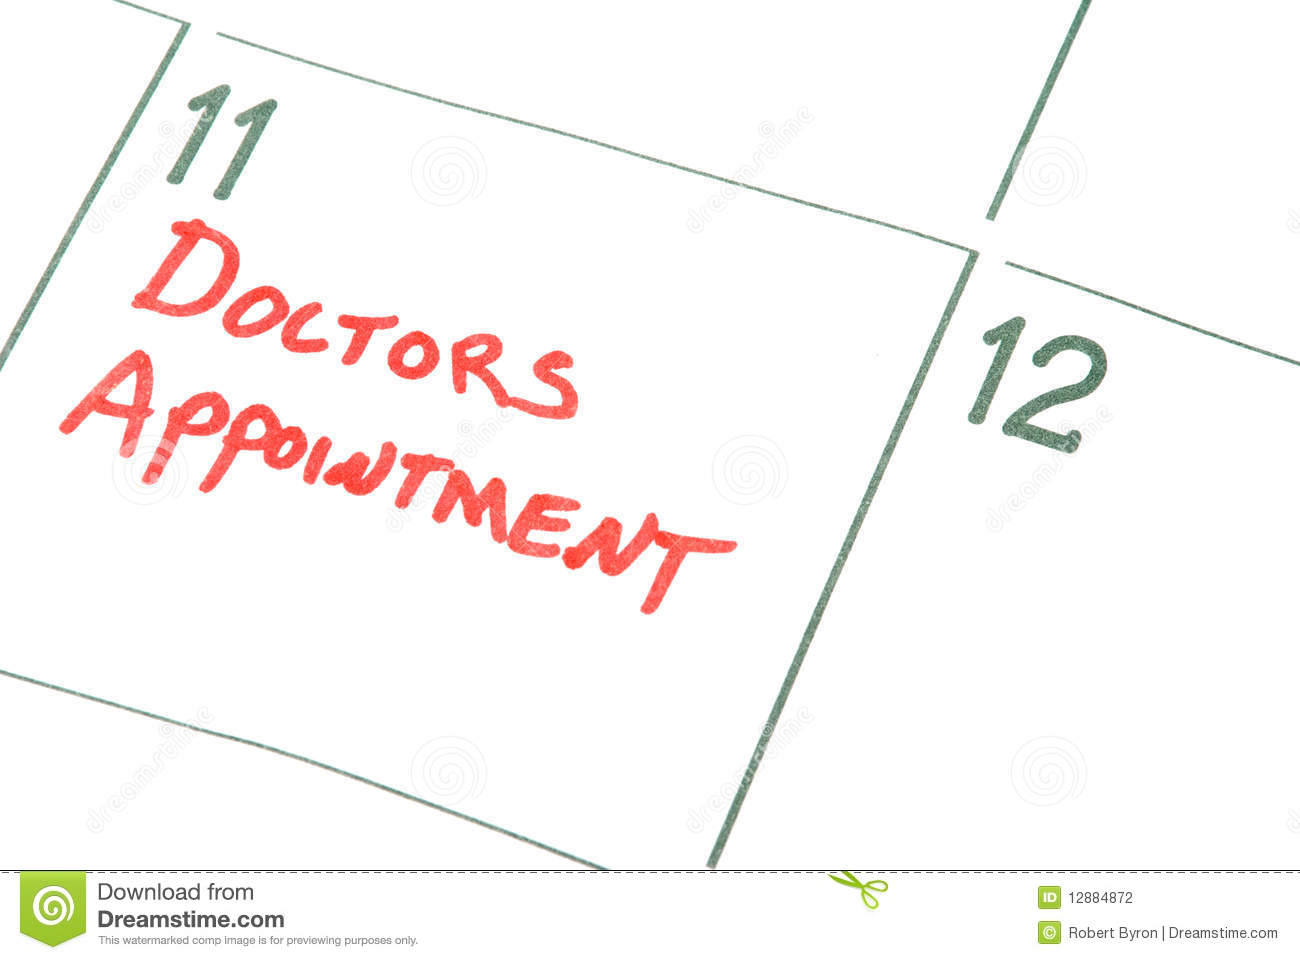 Los doctores Appointment